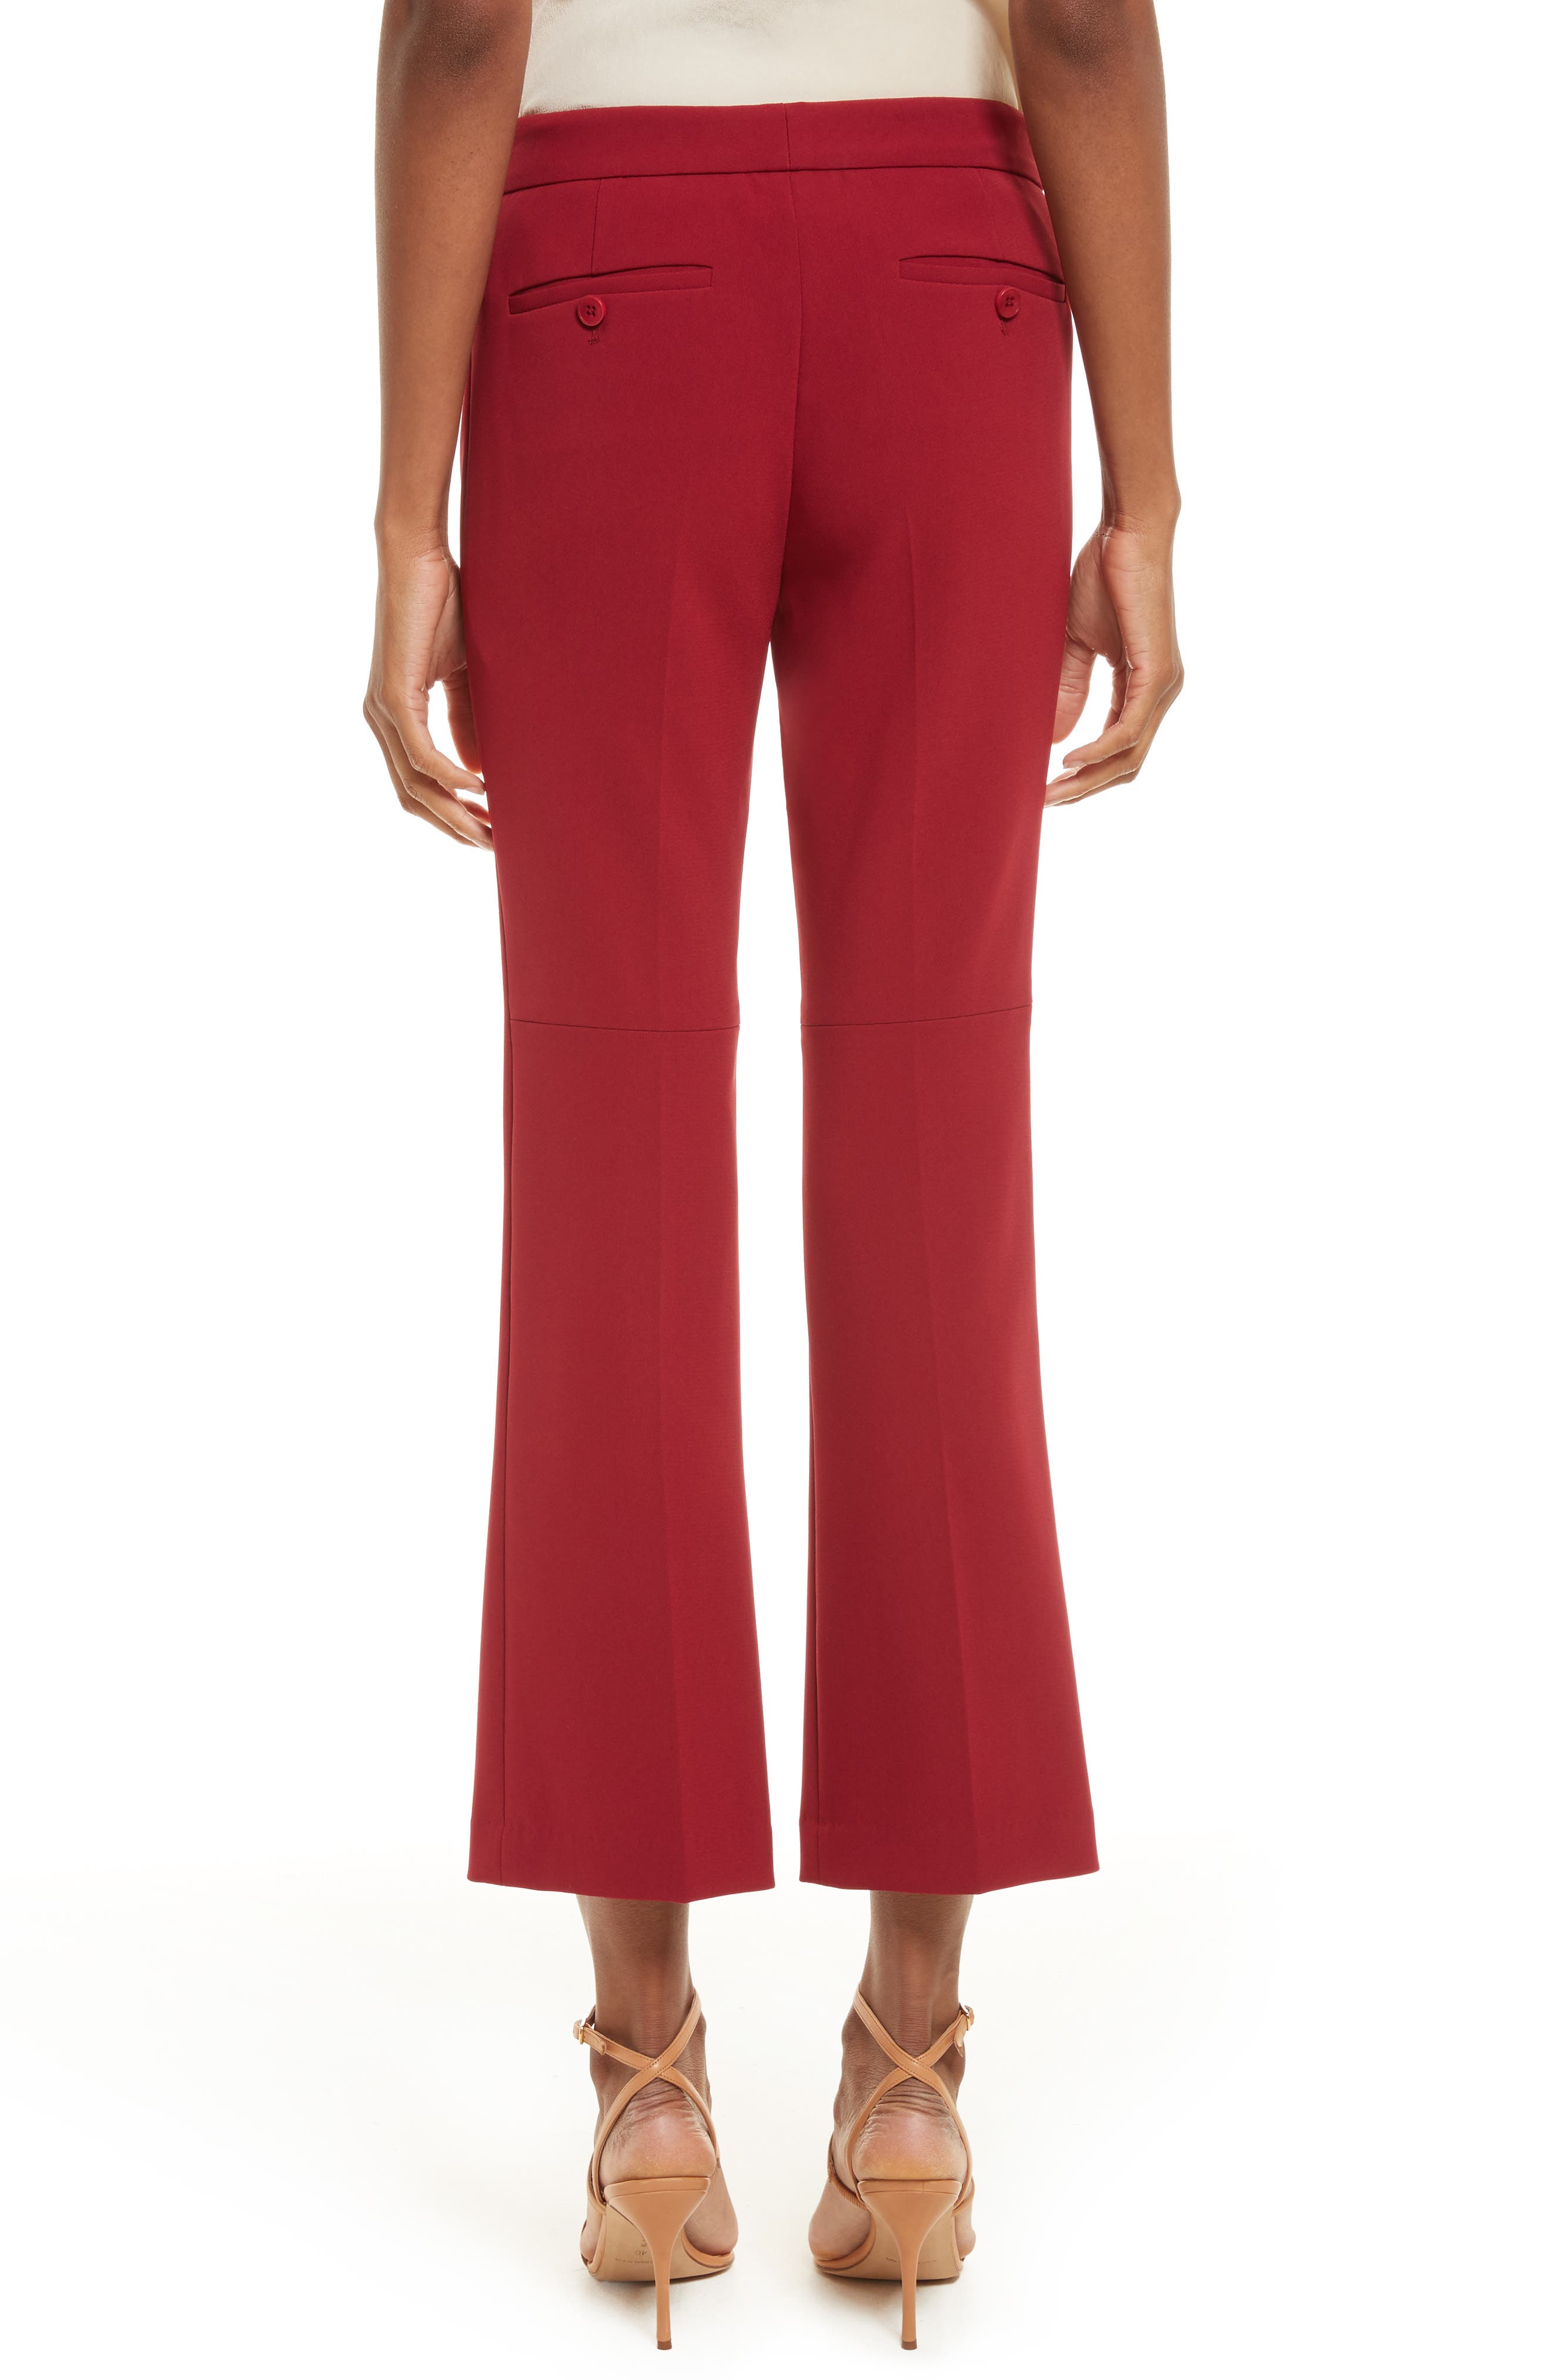 Admiral Crepe Kick Crop Pants,                             Alternate thumbnail 2, color,                             Bright Raspberry